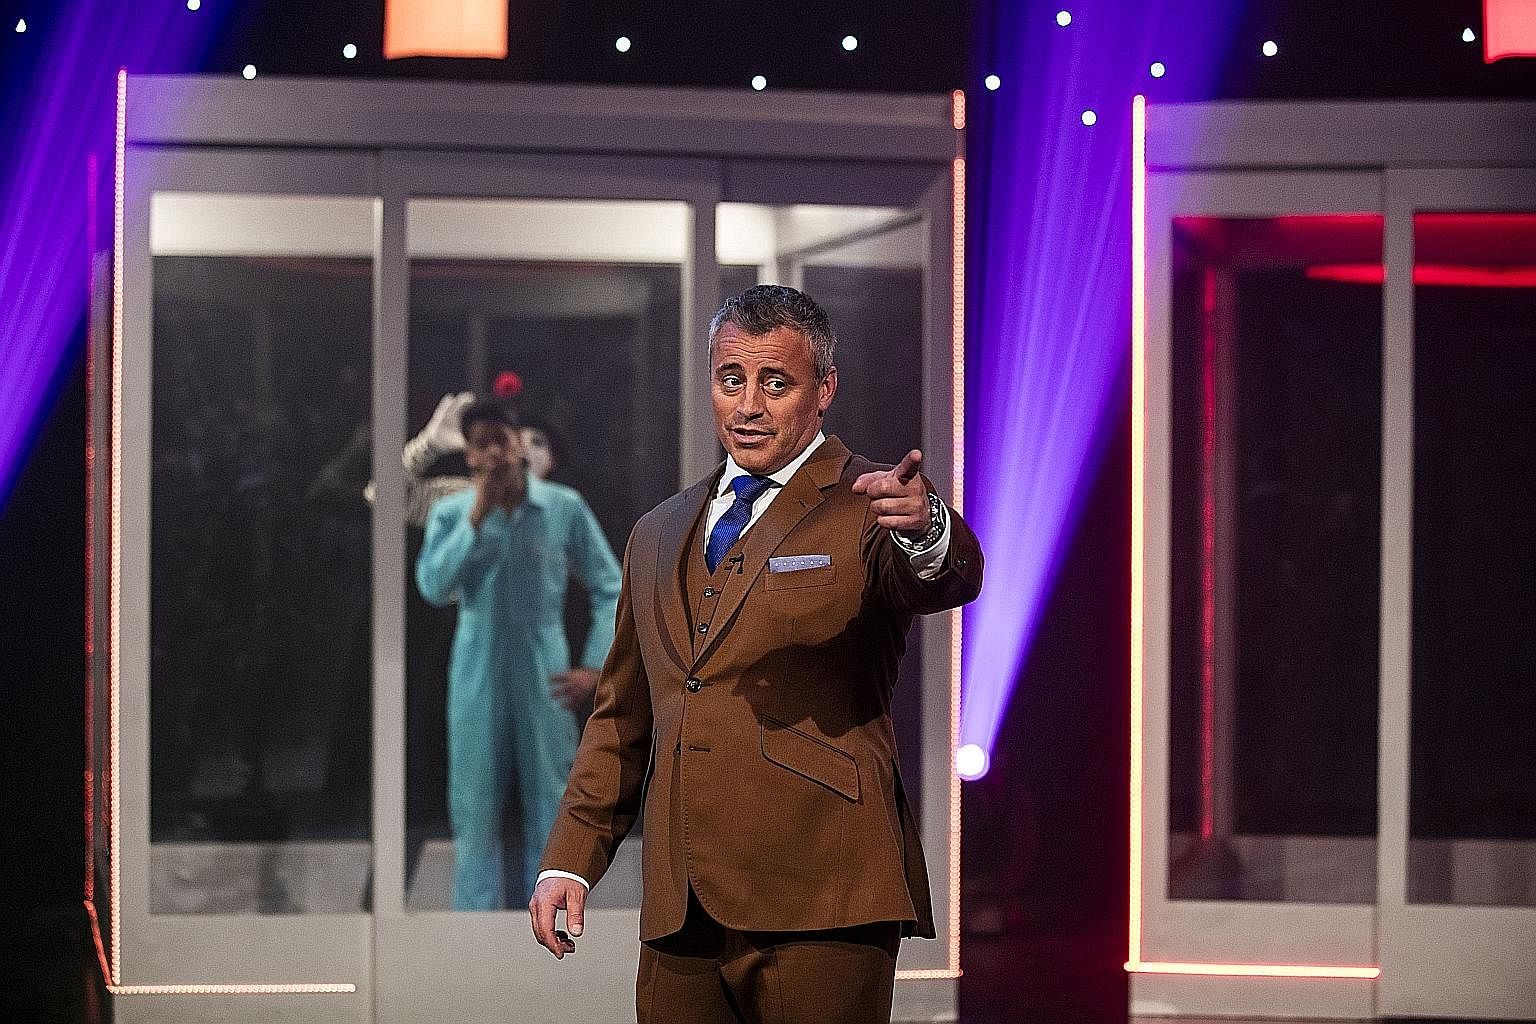 Matt LeBlanc plays a selfish and sex-obsessed version of himself in Episodes.